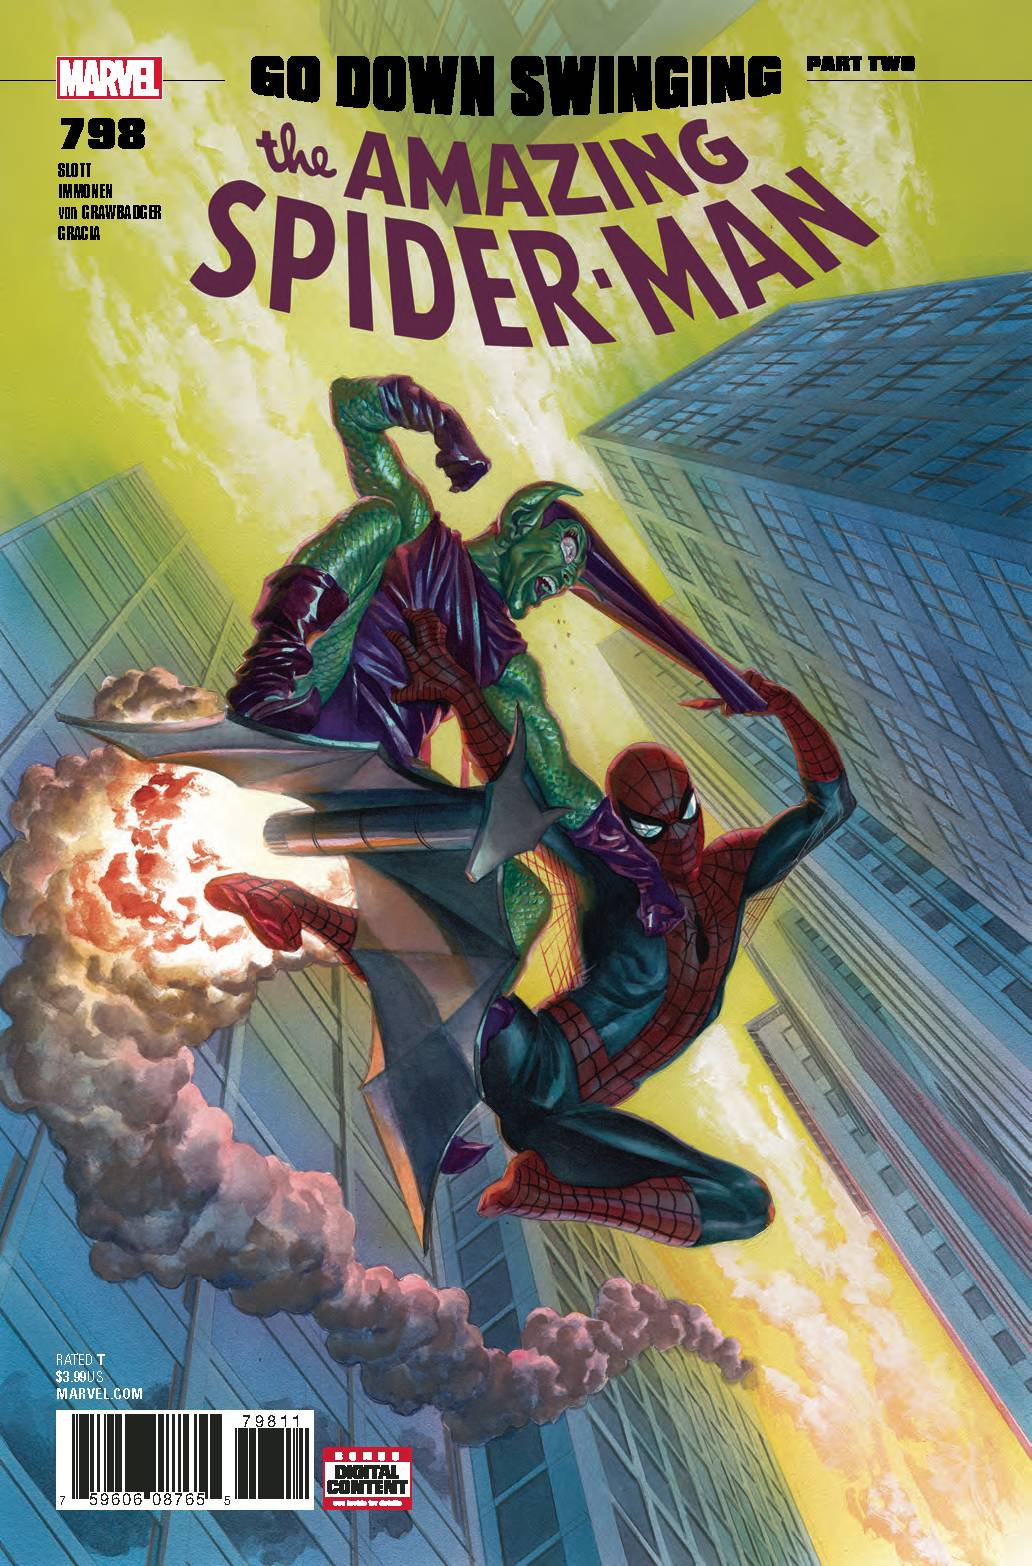 04/04/2018 AMAZING SPIDER-MAN #798 ALEX ROSS (1ST RED GOBLIN)